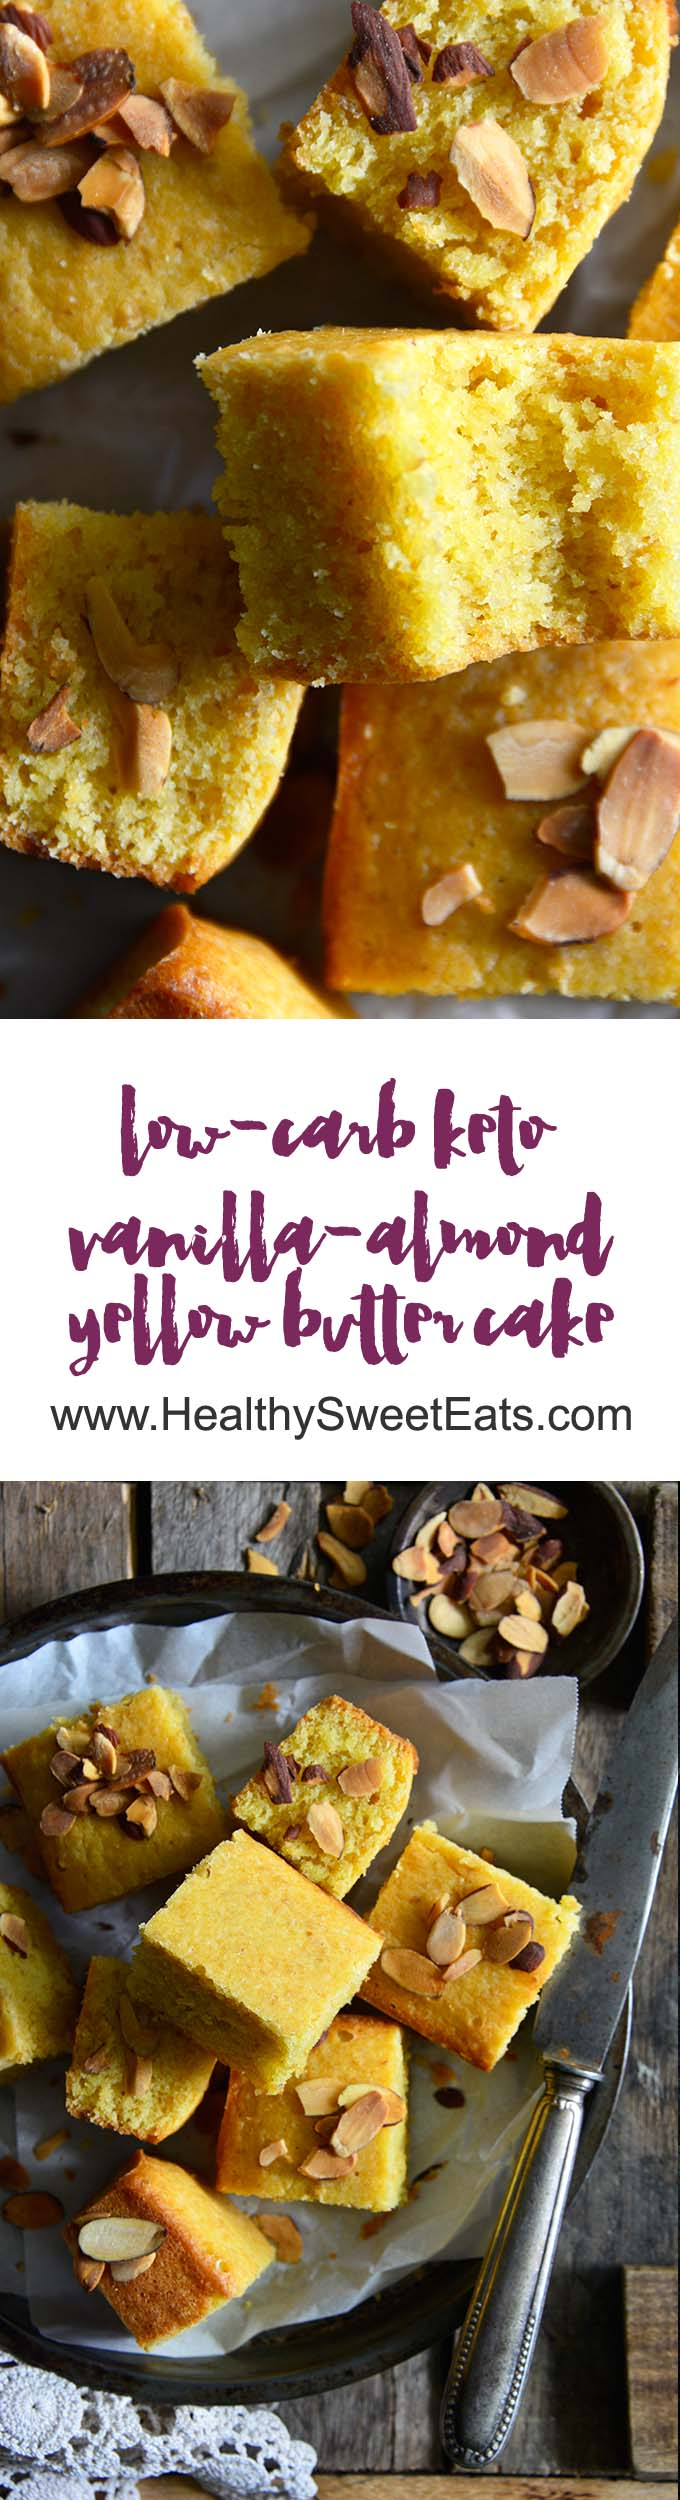 Low-Carb Keto Vanilla-Almond Yellow Butter Cake Long Pin